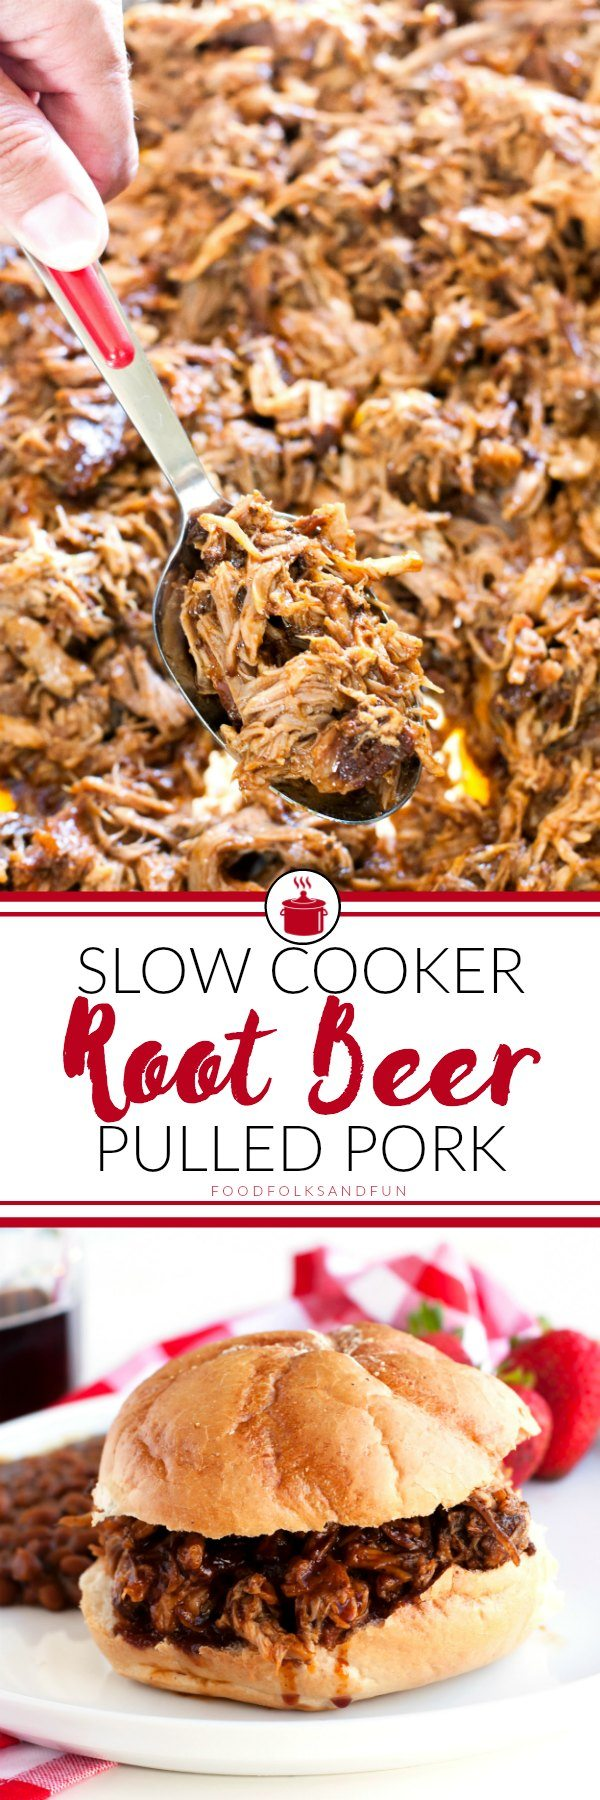 This Slow Cooker Root Beer Pulled Pork recipe is sweet, tangy, and completely delicious. It's perfect for entertaining, and the root beer barbecue sauce alone is worth the make!